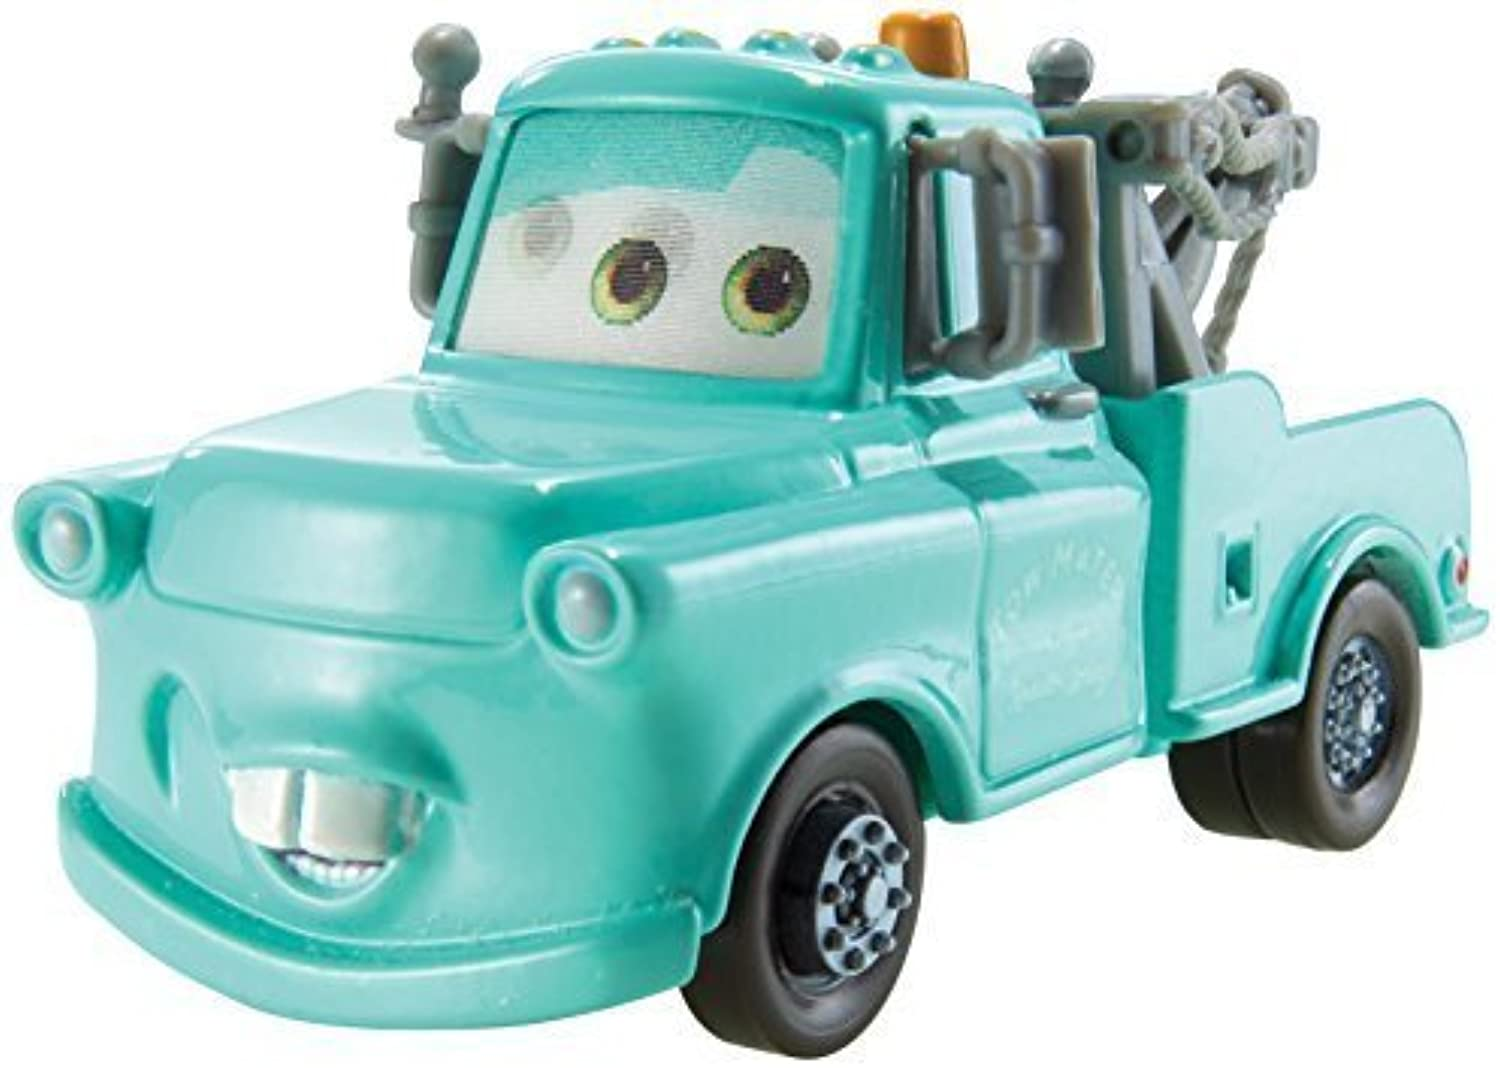 Disney Pixar Cars Brand New Mater Diecast Vehicle by Mattel